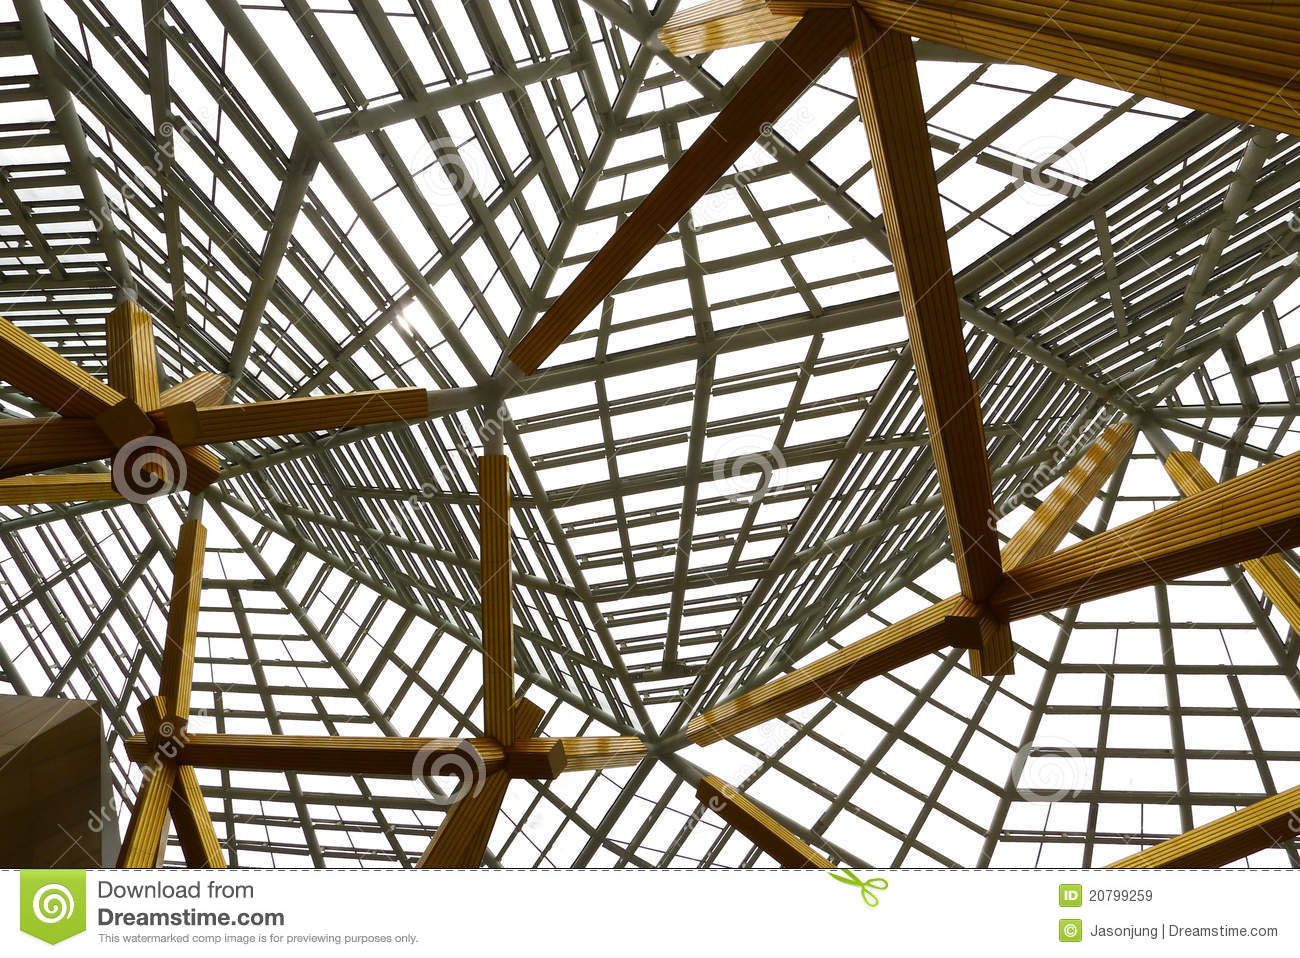 Skylight framework architecture royalty free stock images for Architectural skylights